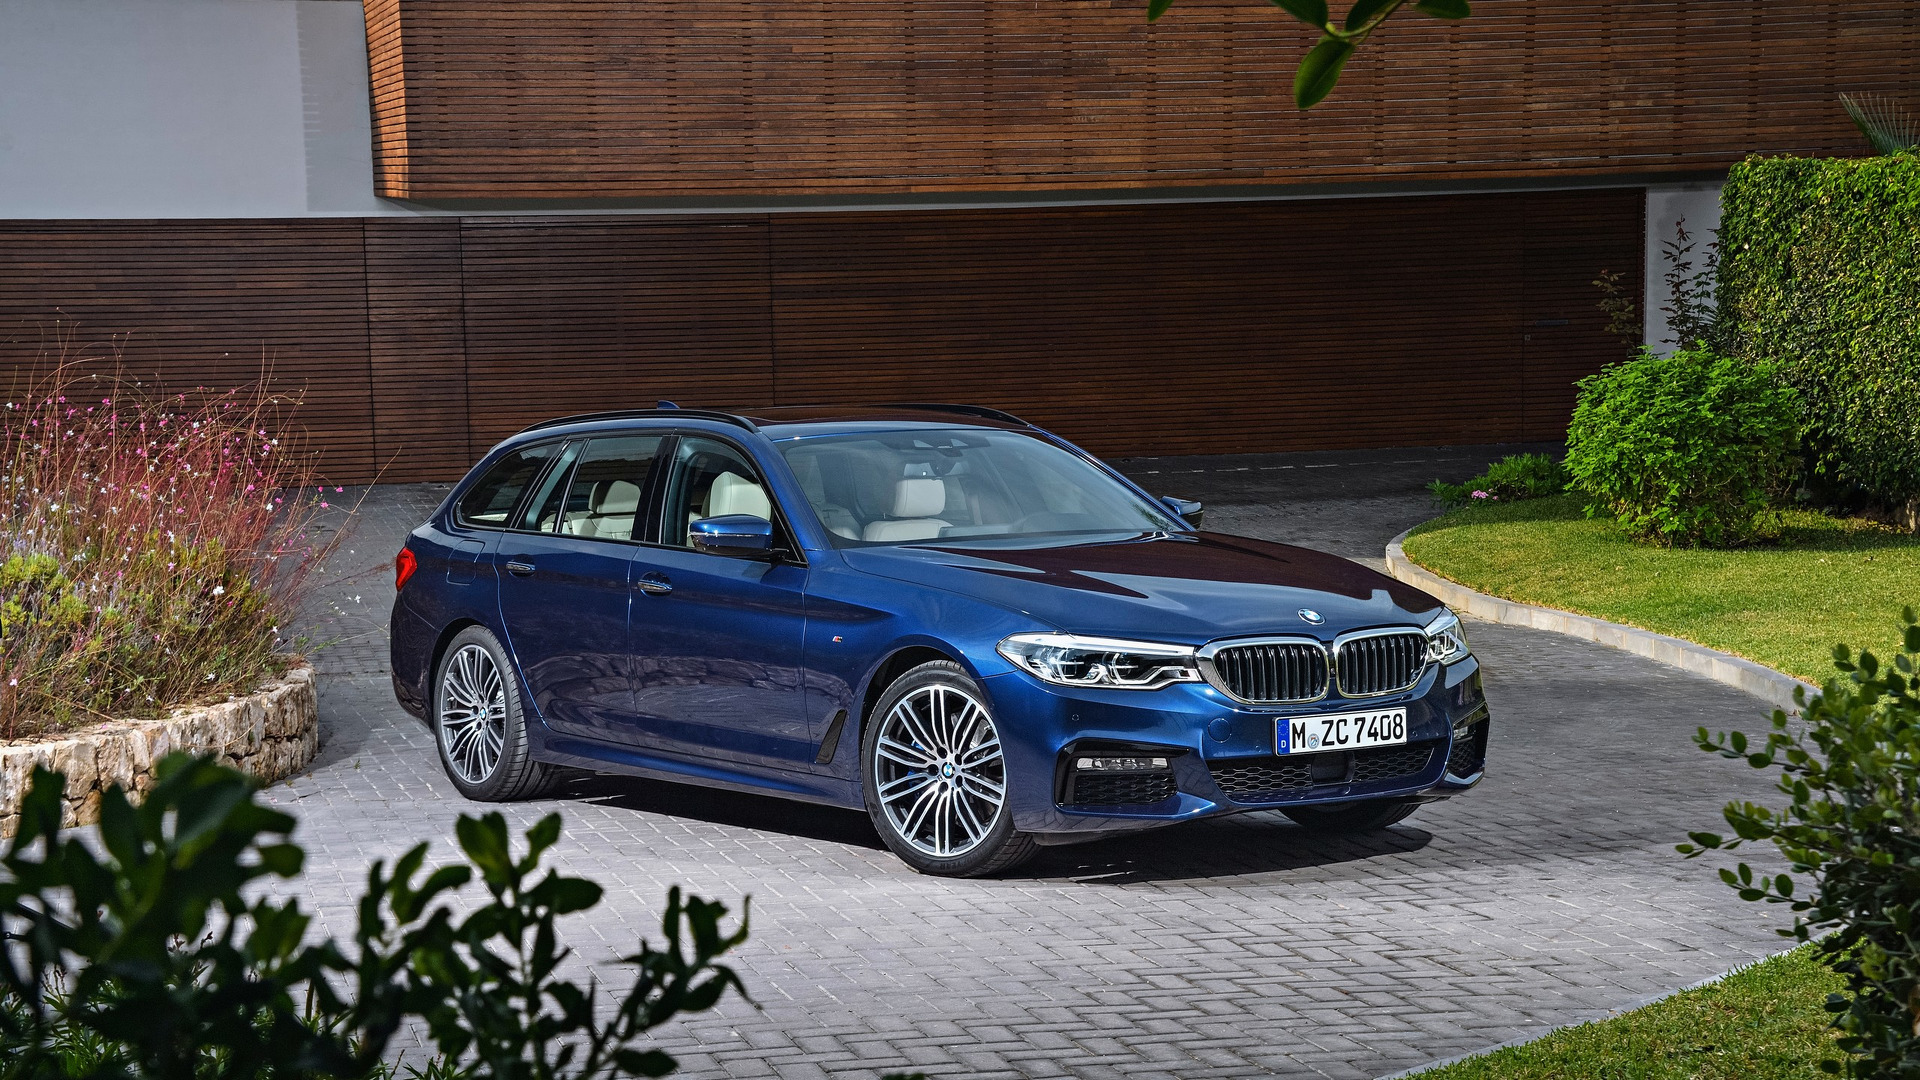 2017 Bmw 5 Series Touring Wants To Be The Ultimate Family